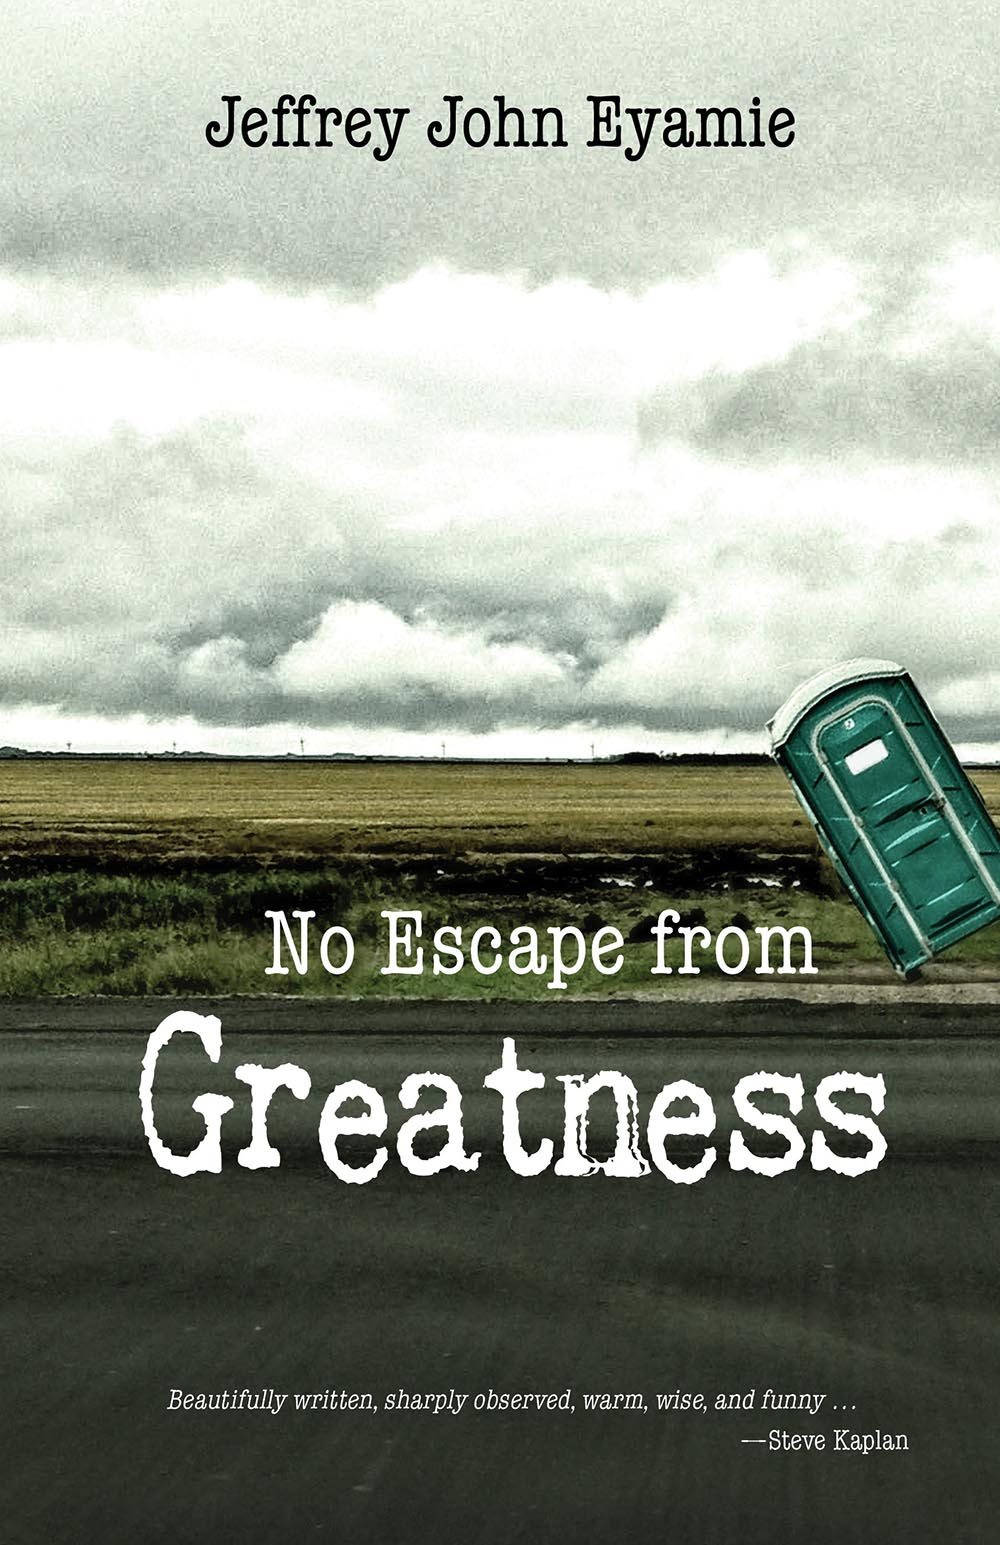 No Escape from Greatness by Jeffrey John Eyamie